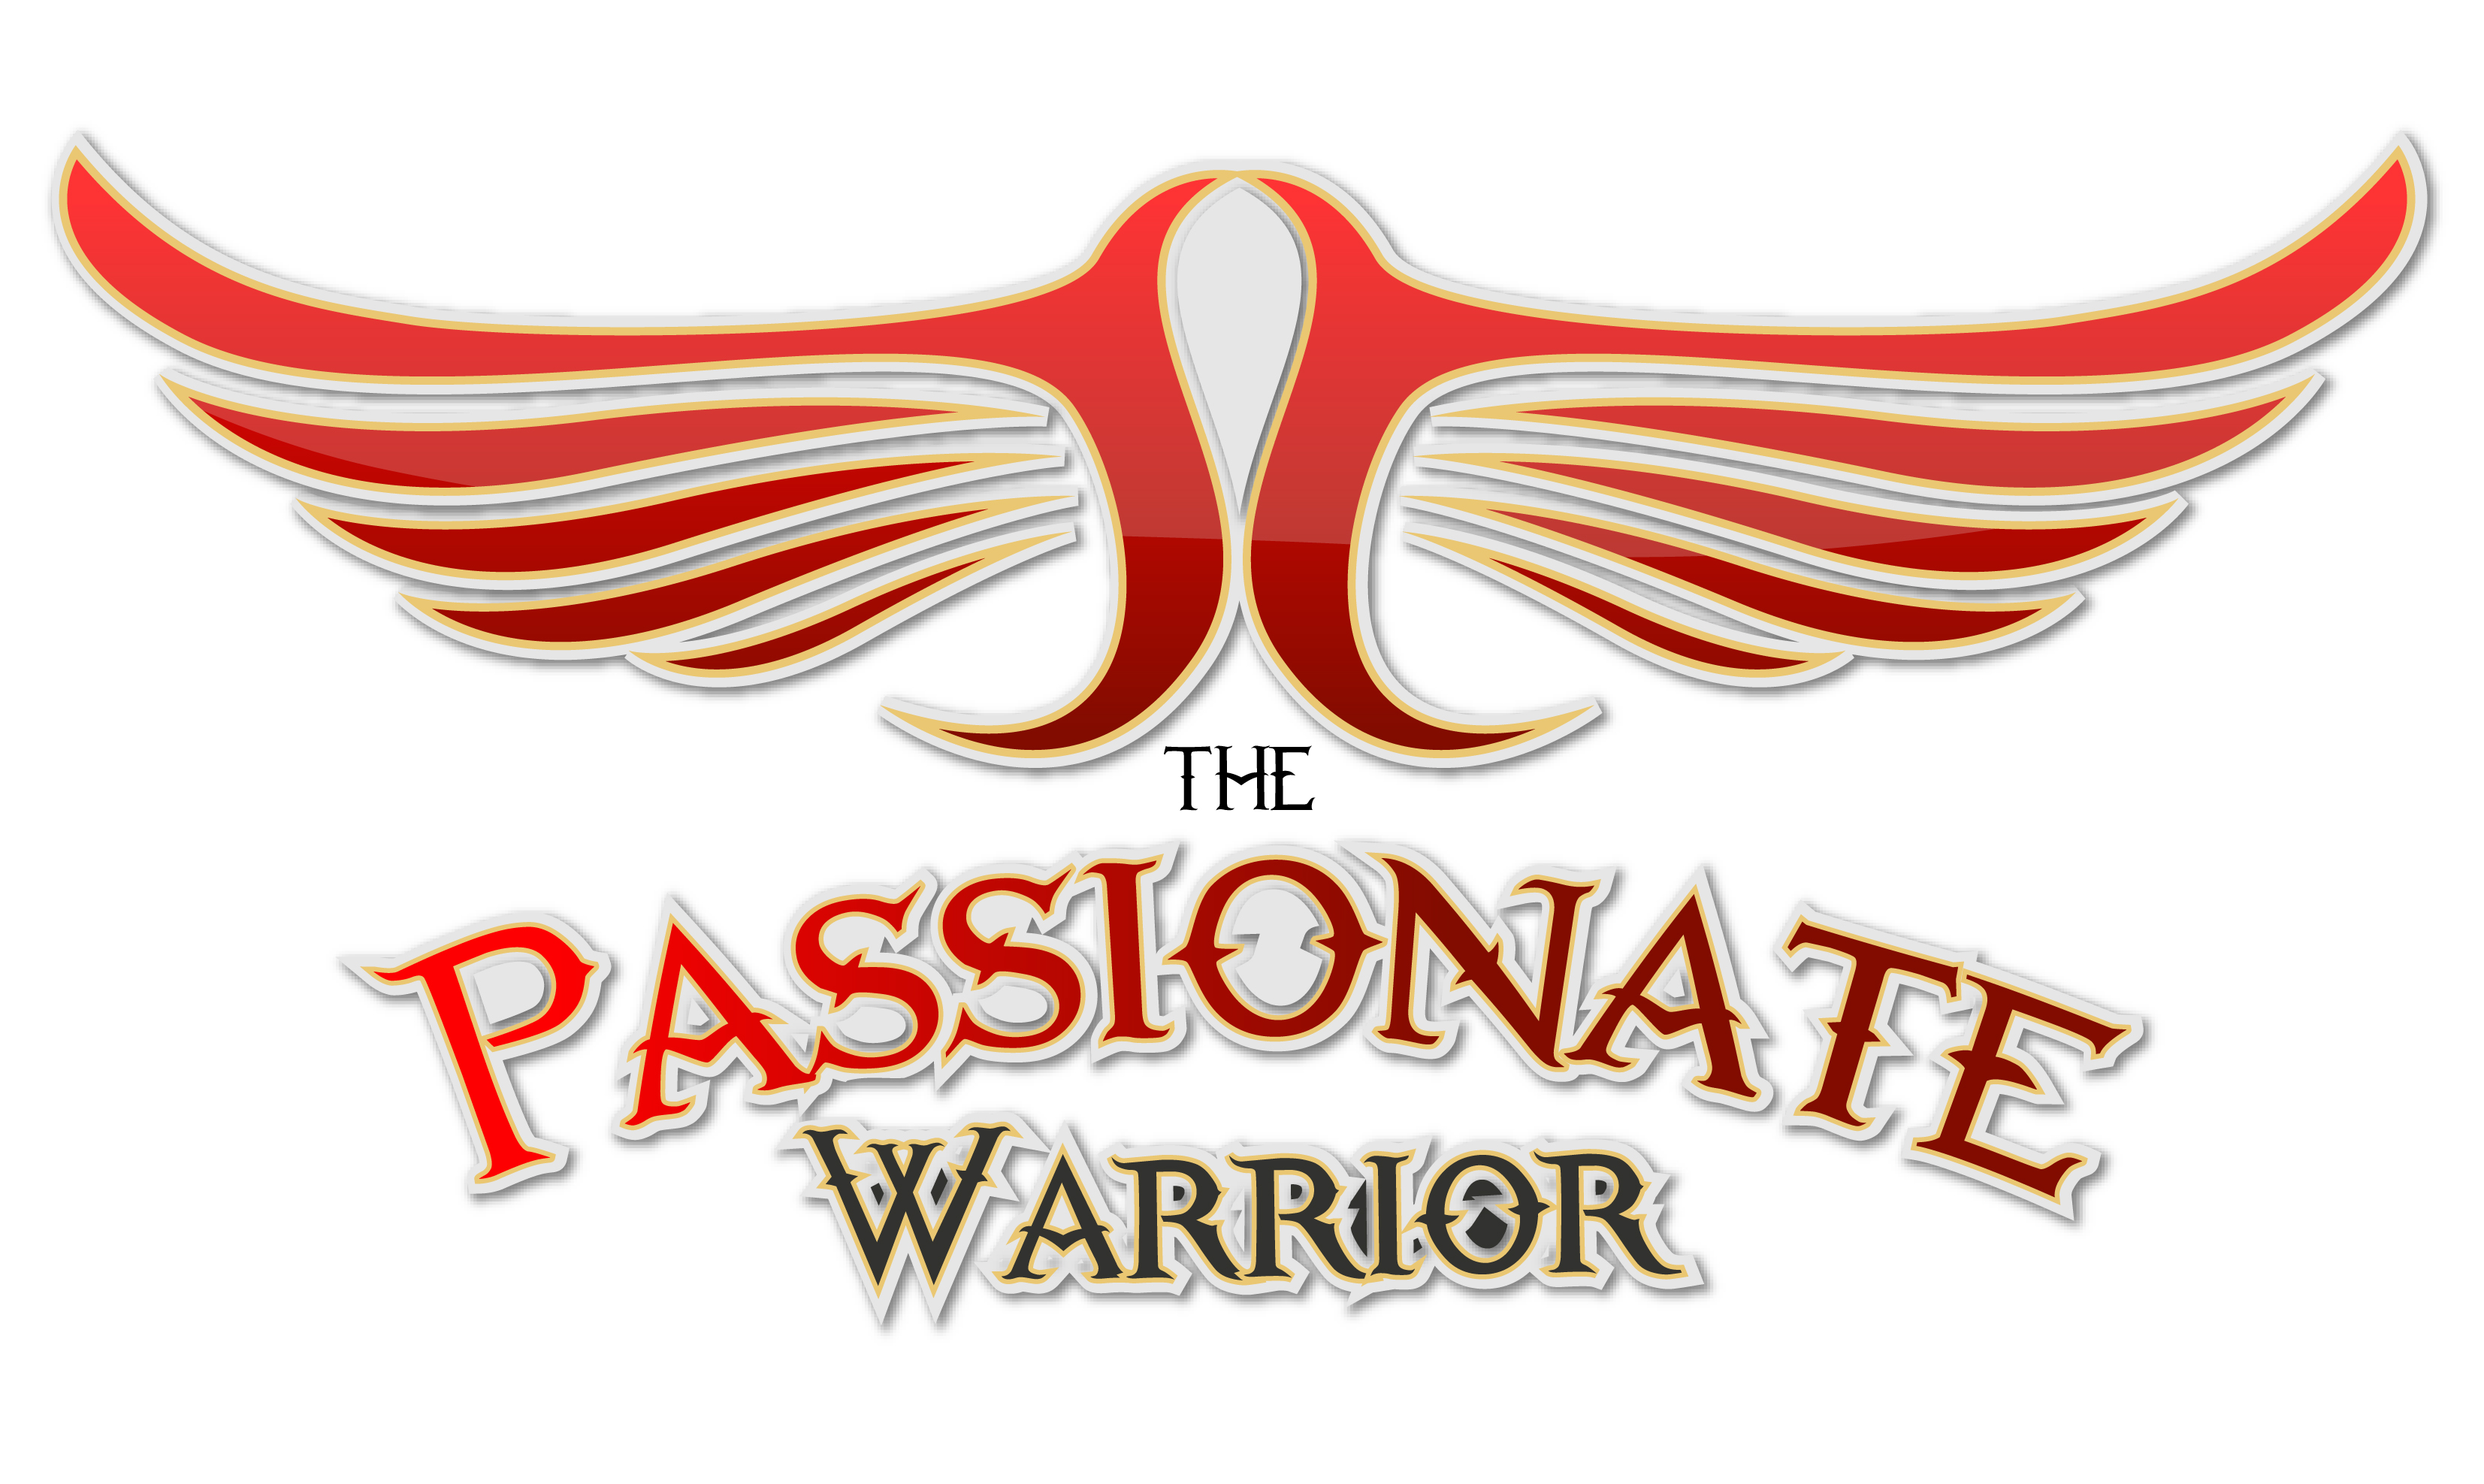 The Way of the Passionate Warrior